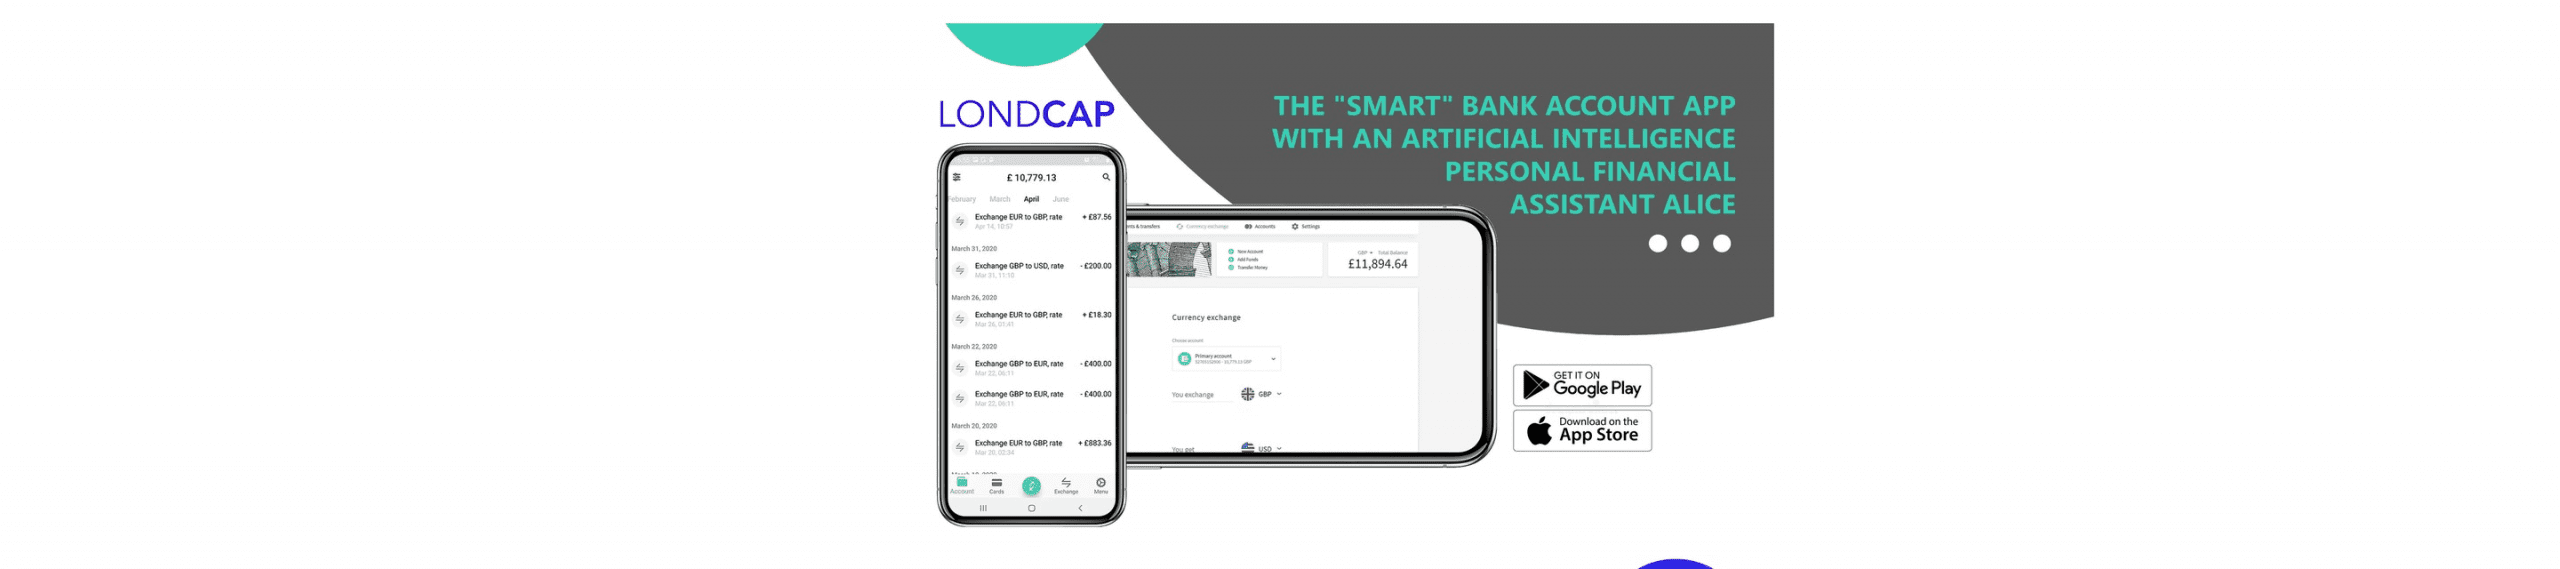 LONDCAP LTD | Equity | Seedrs | Mixed B2B/B2C | Crowdfund | Crowdfundingtracker | London